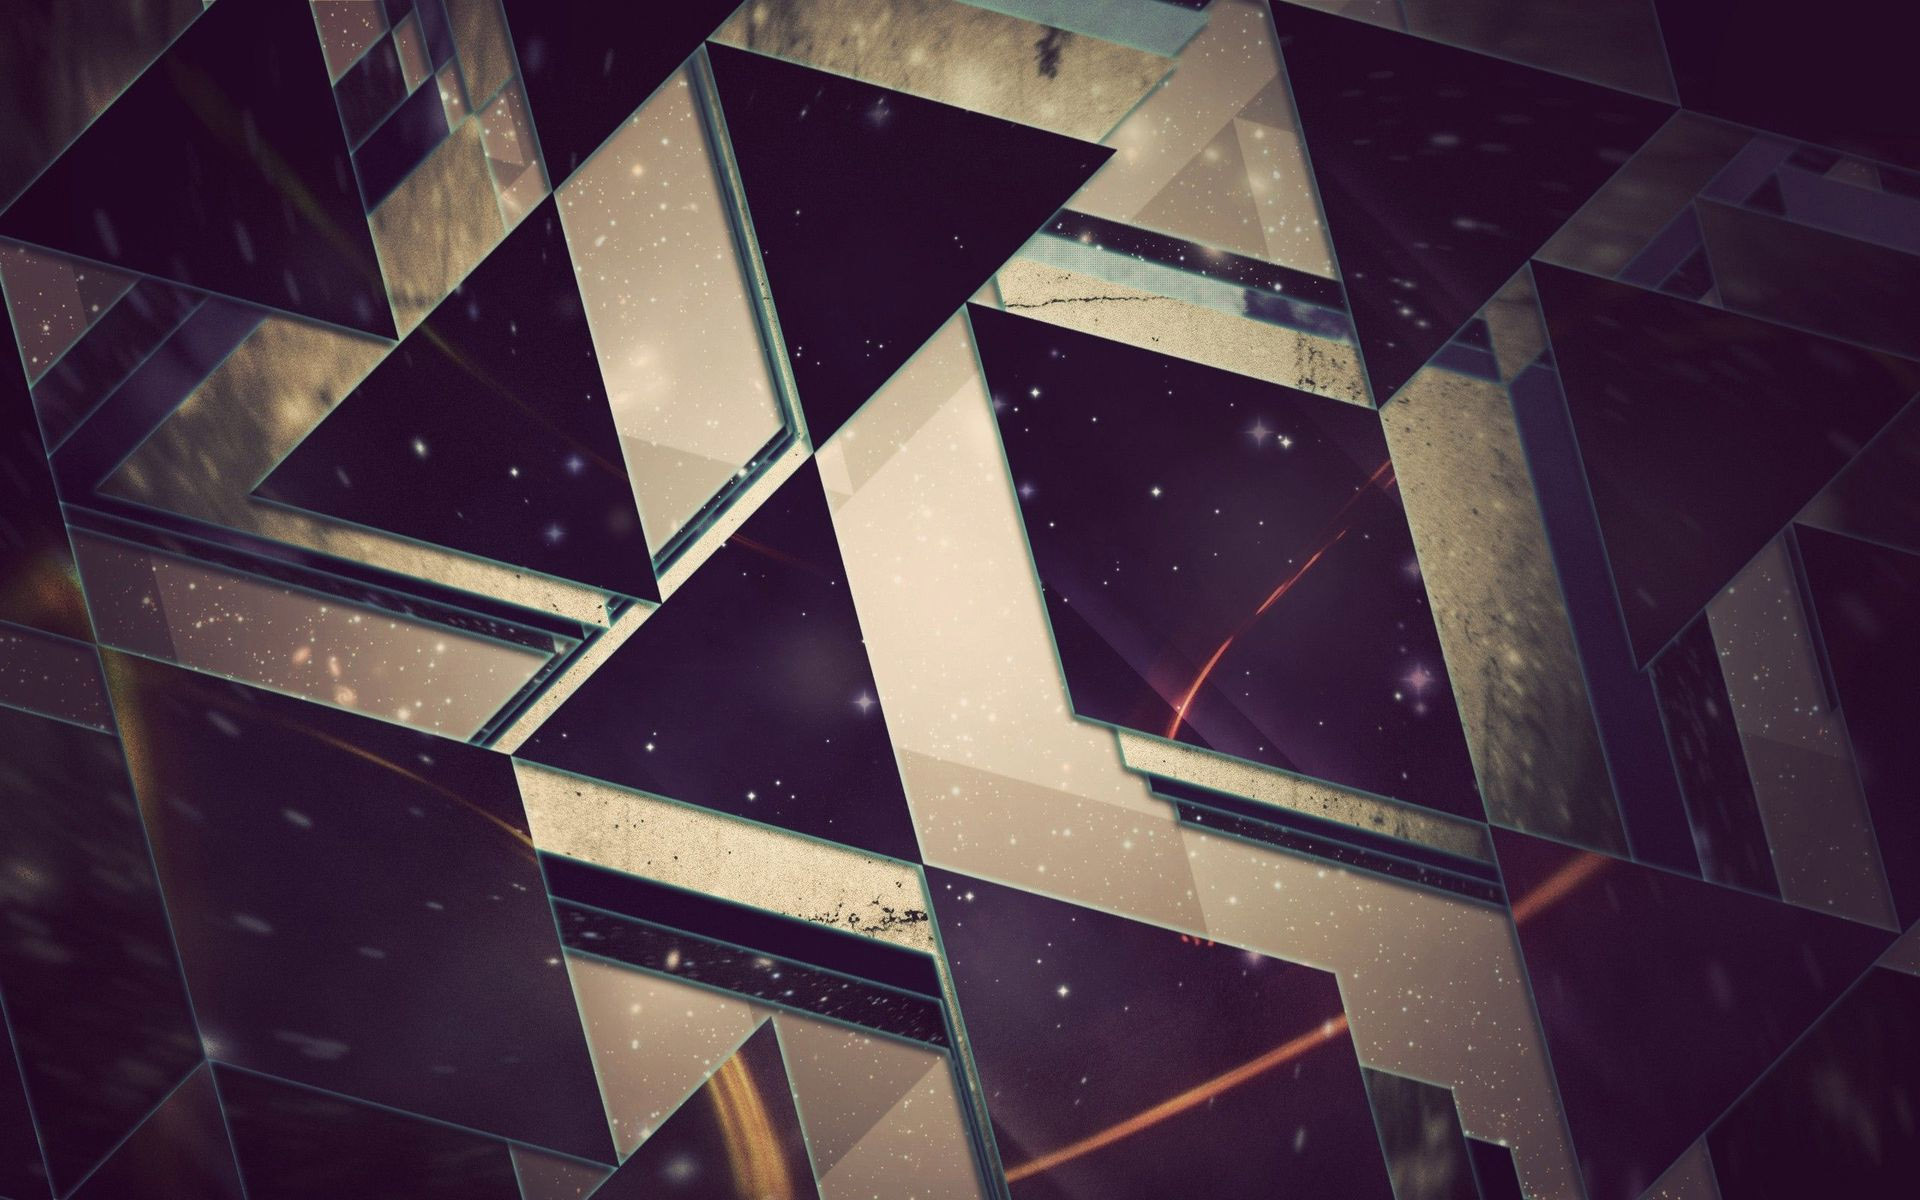 triangle abstract wallpapers hd - photo #42